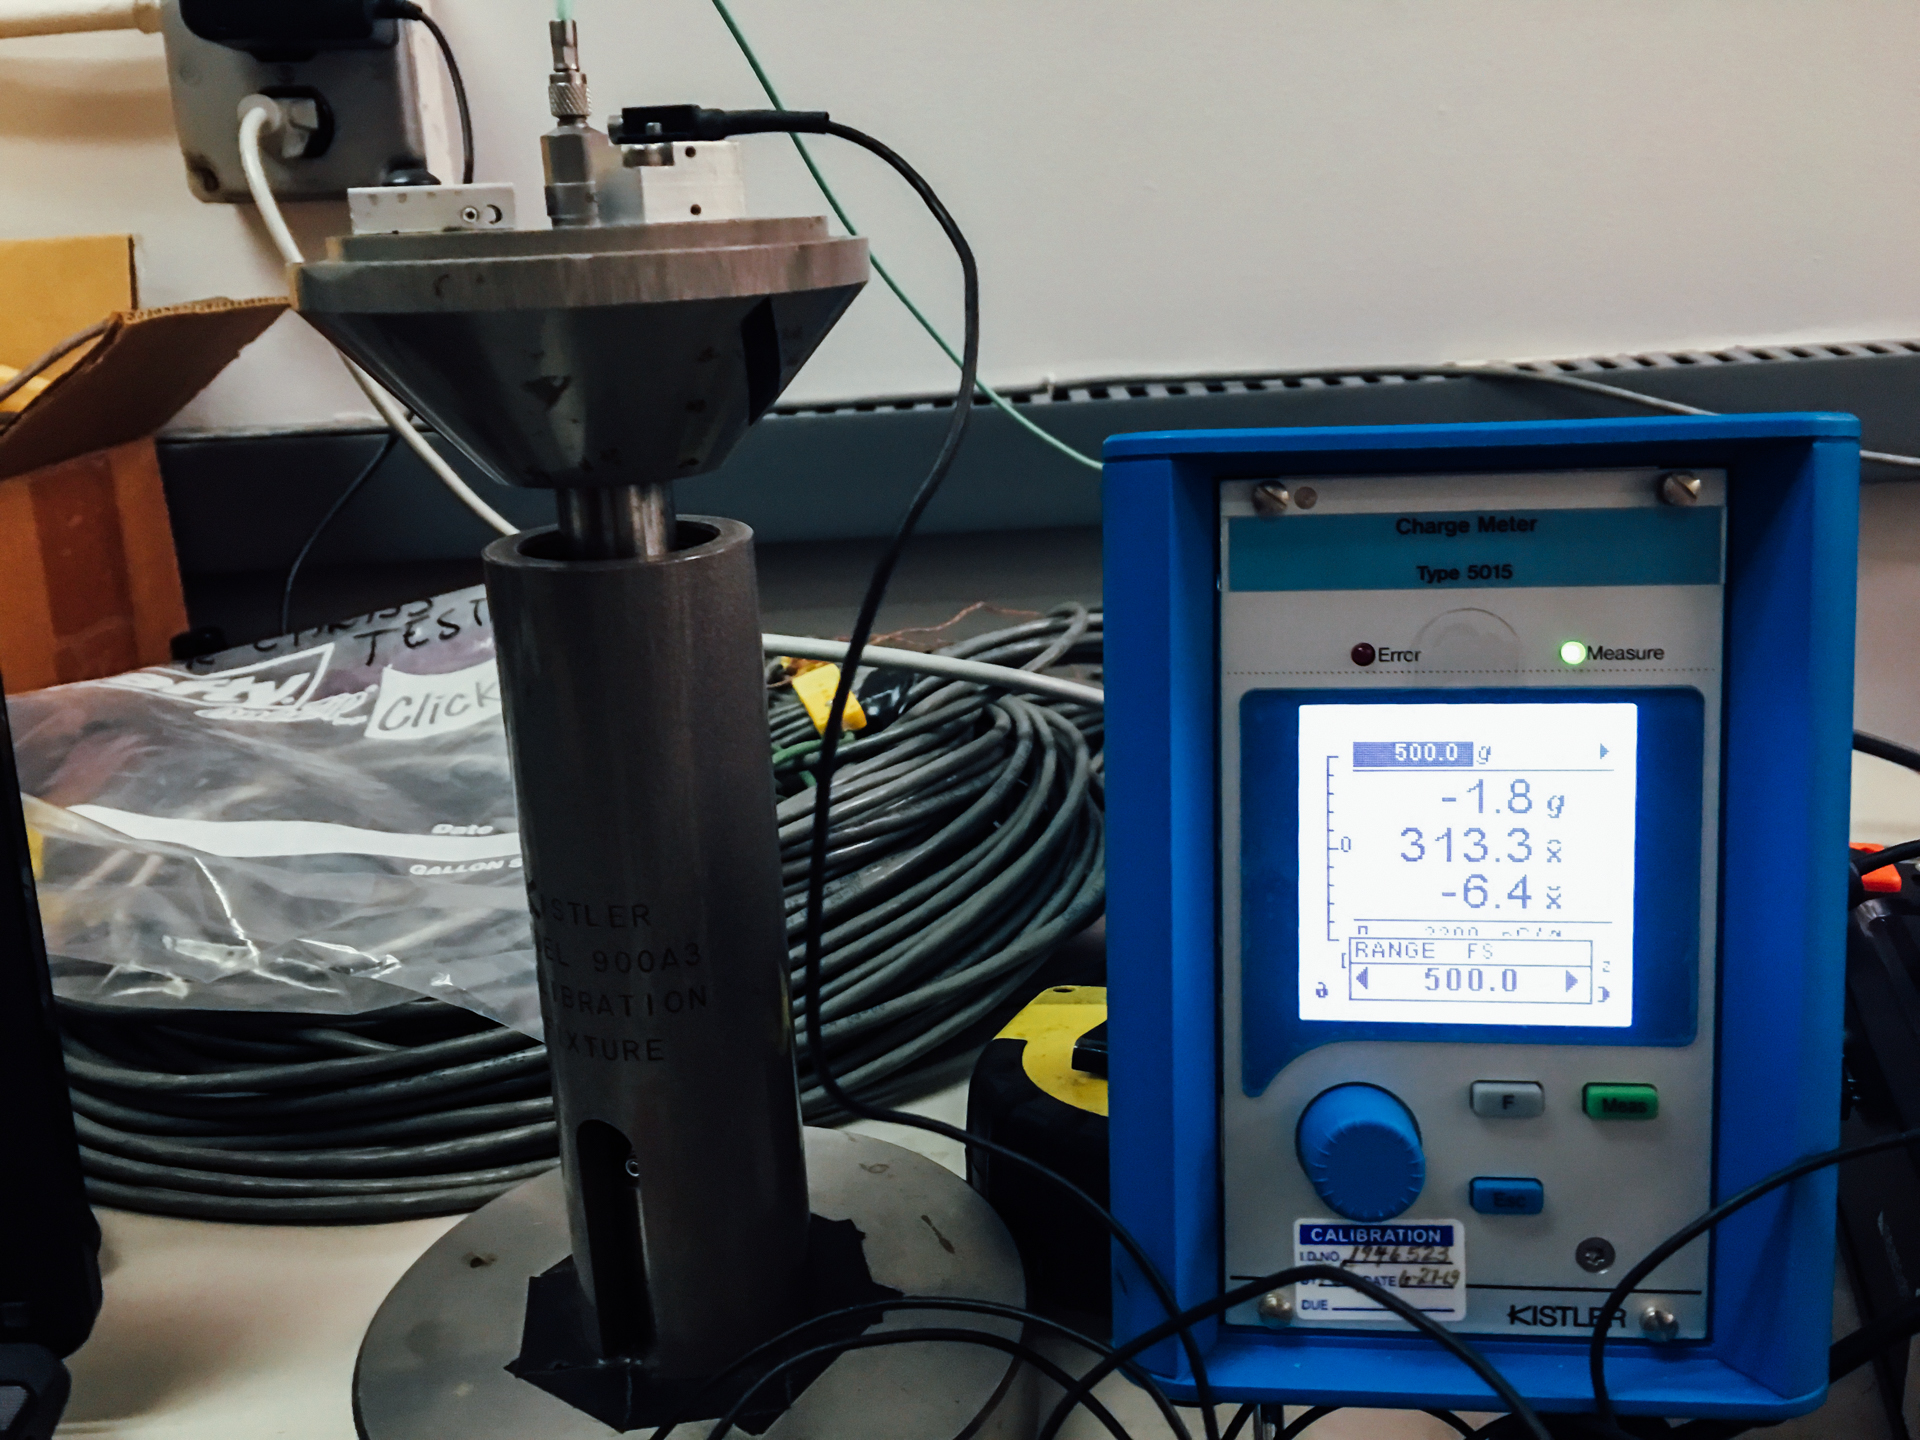 Figure 3a: A Kistler calibration drop tower (Model 5015) with a peak G display screen